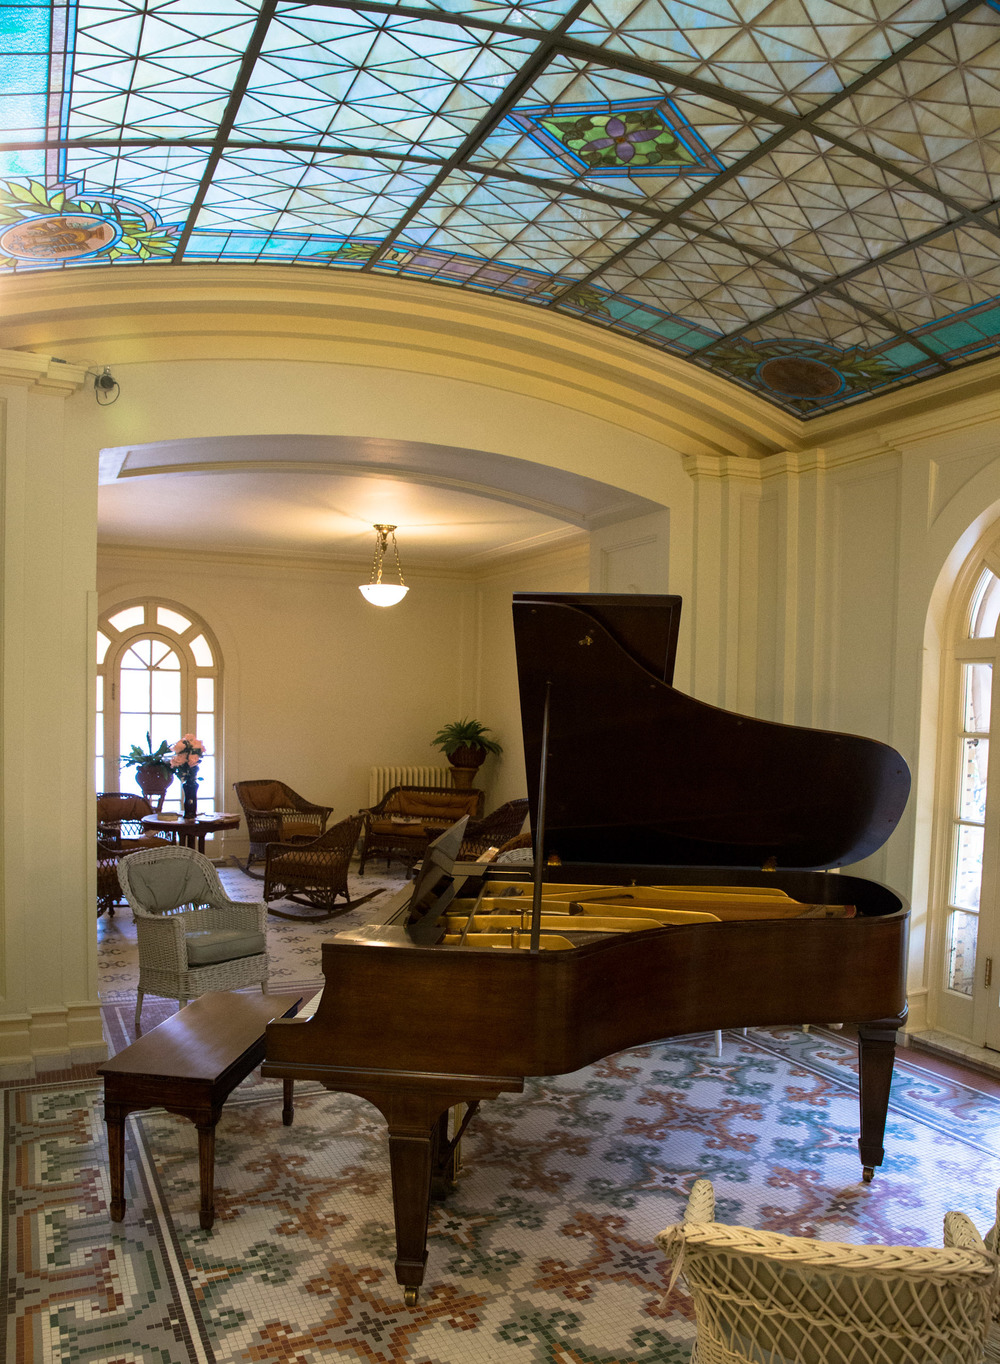 After a hard day at the Spa clients could unwind by reading a book or singing around the piano.